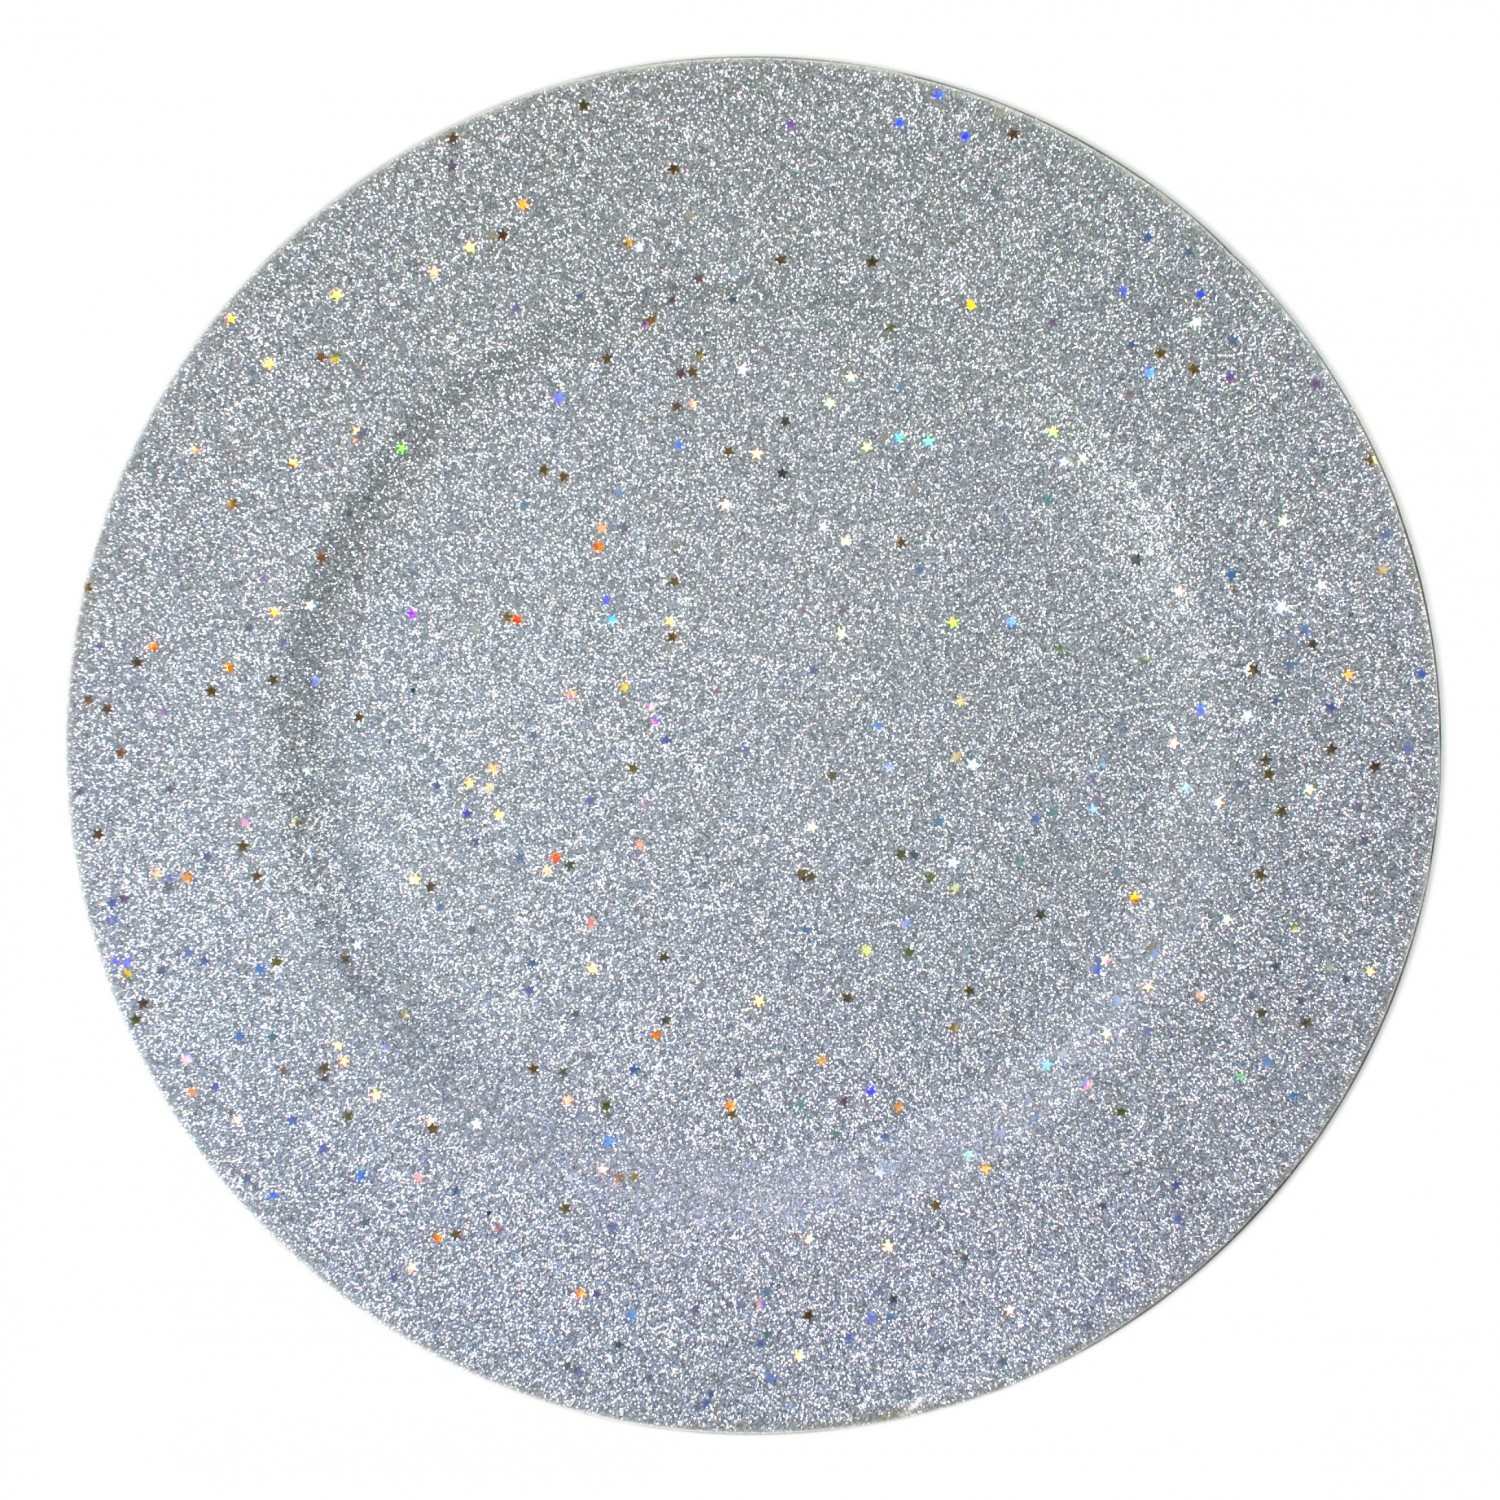 The Jay Companies 1180019 Glitter and Stars Silver Charger Plate 13""